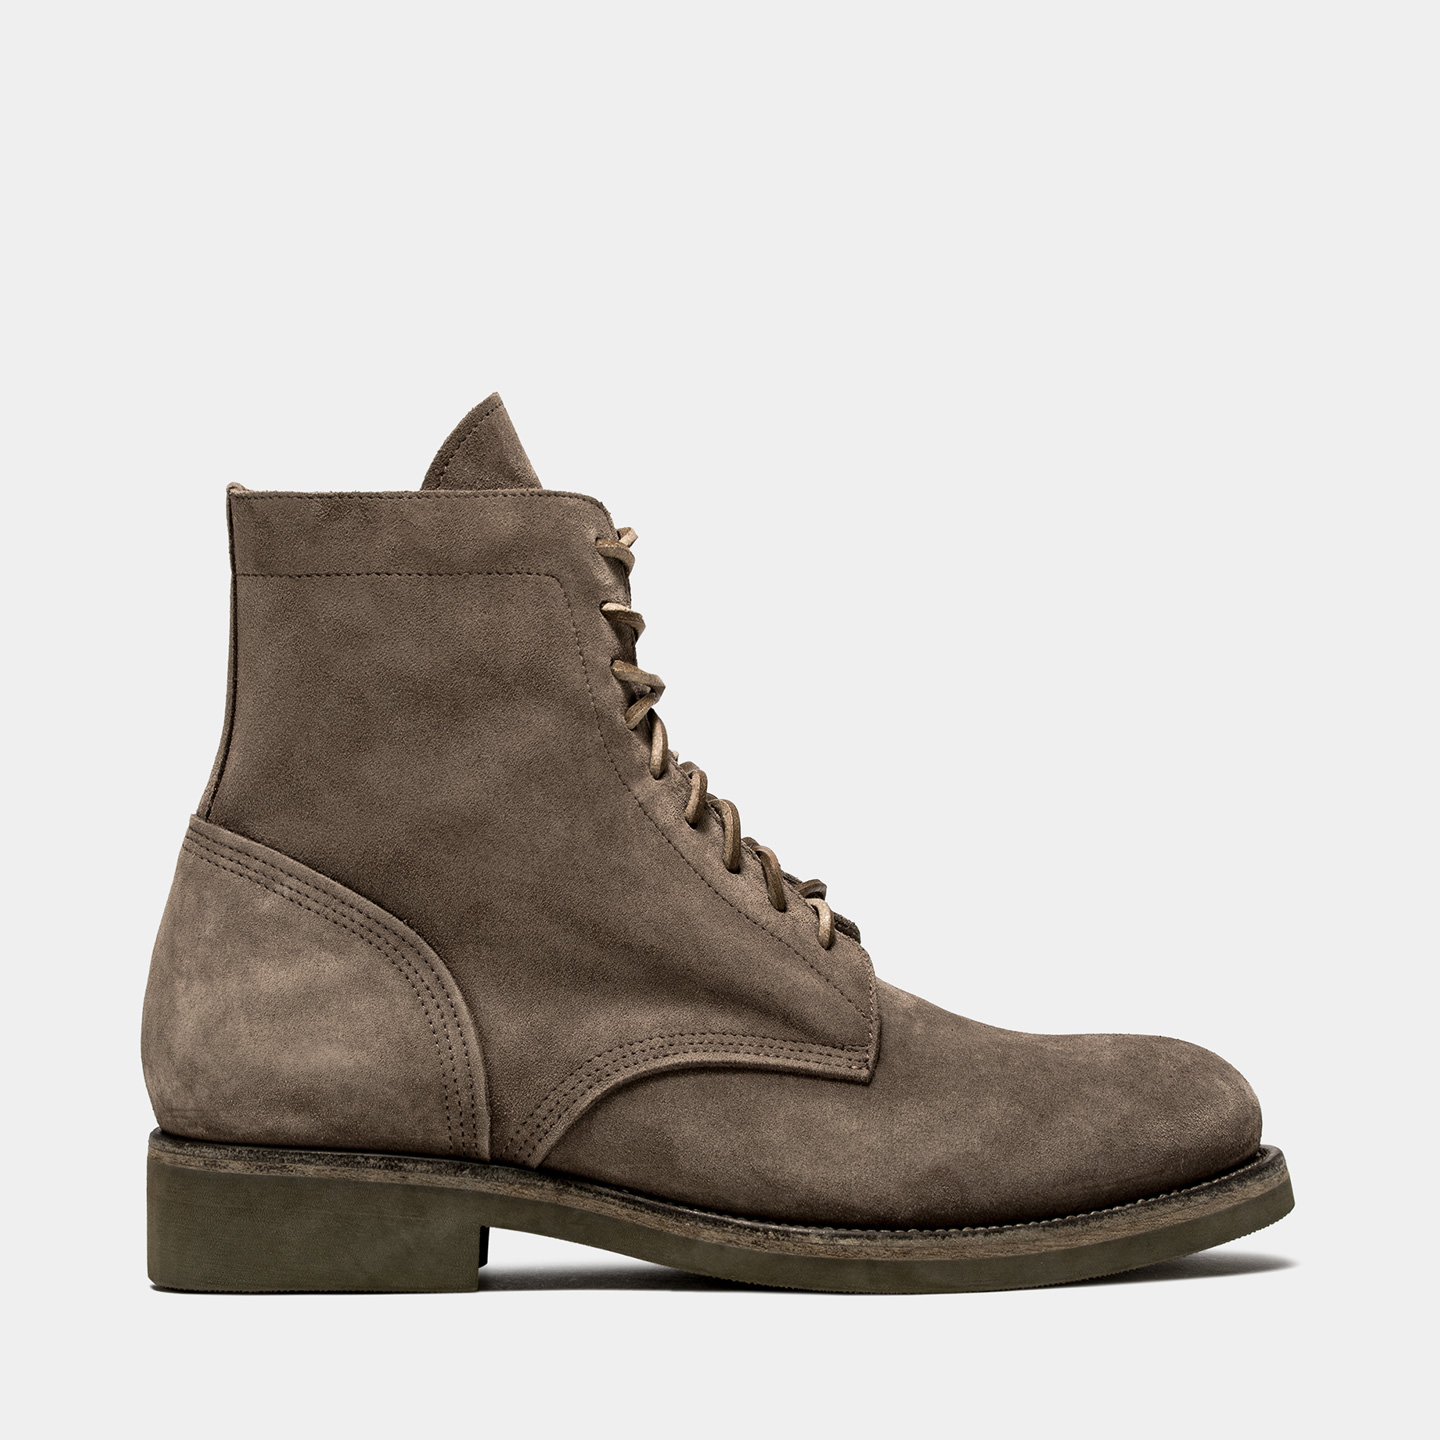 BUTTERO: POLACCO TOM IN SUEDE TAUPE